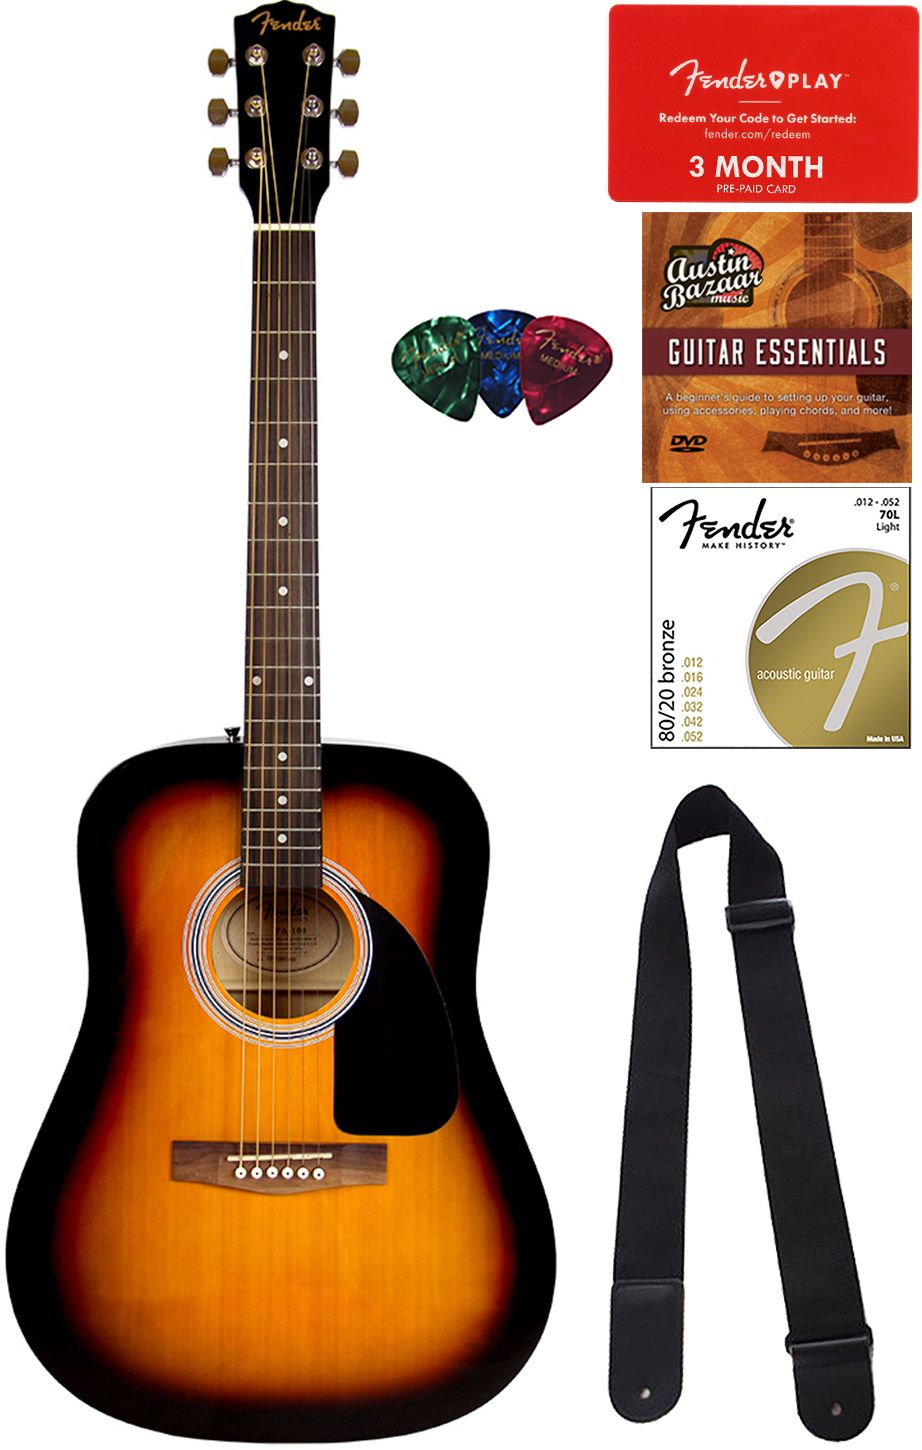 Details About Fender Fa 115 Dreadnought Acoustic Guitar Sunburst W Fender Play Online Lessons With Images Guitar